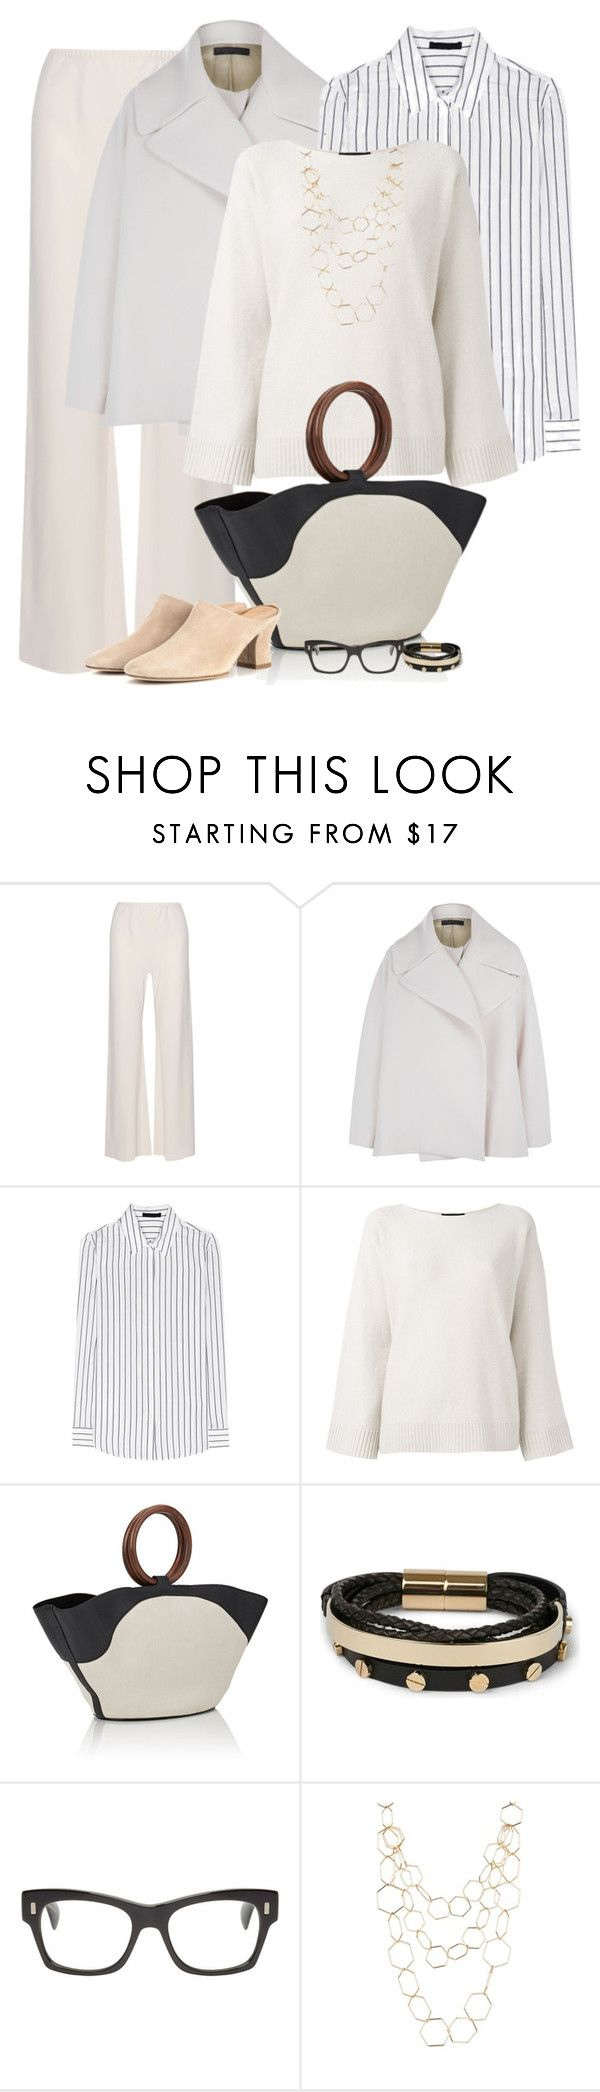 """""""Untitled #7232"""" by lisa-holt ❤ liked on Polyvore featuring The Row, Givenchy, Oliver Peoples and Spring Street"""